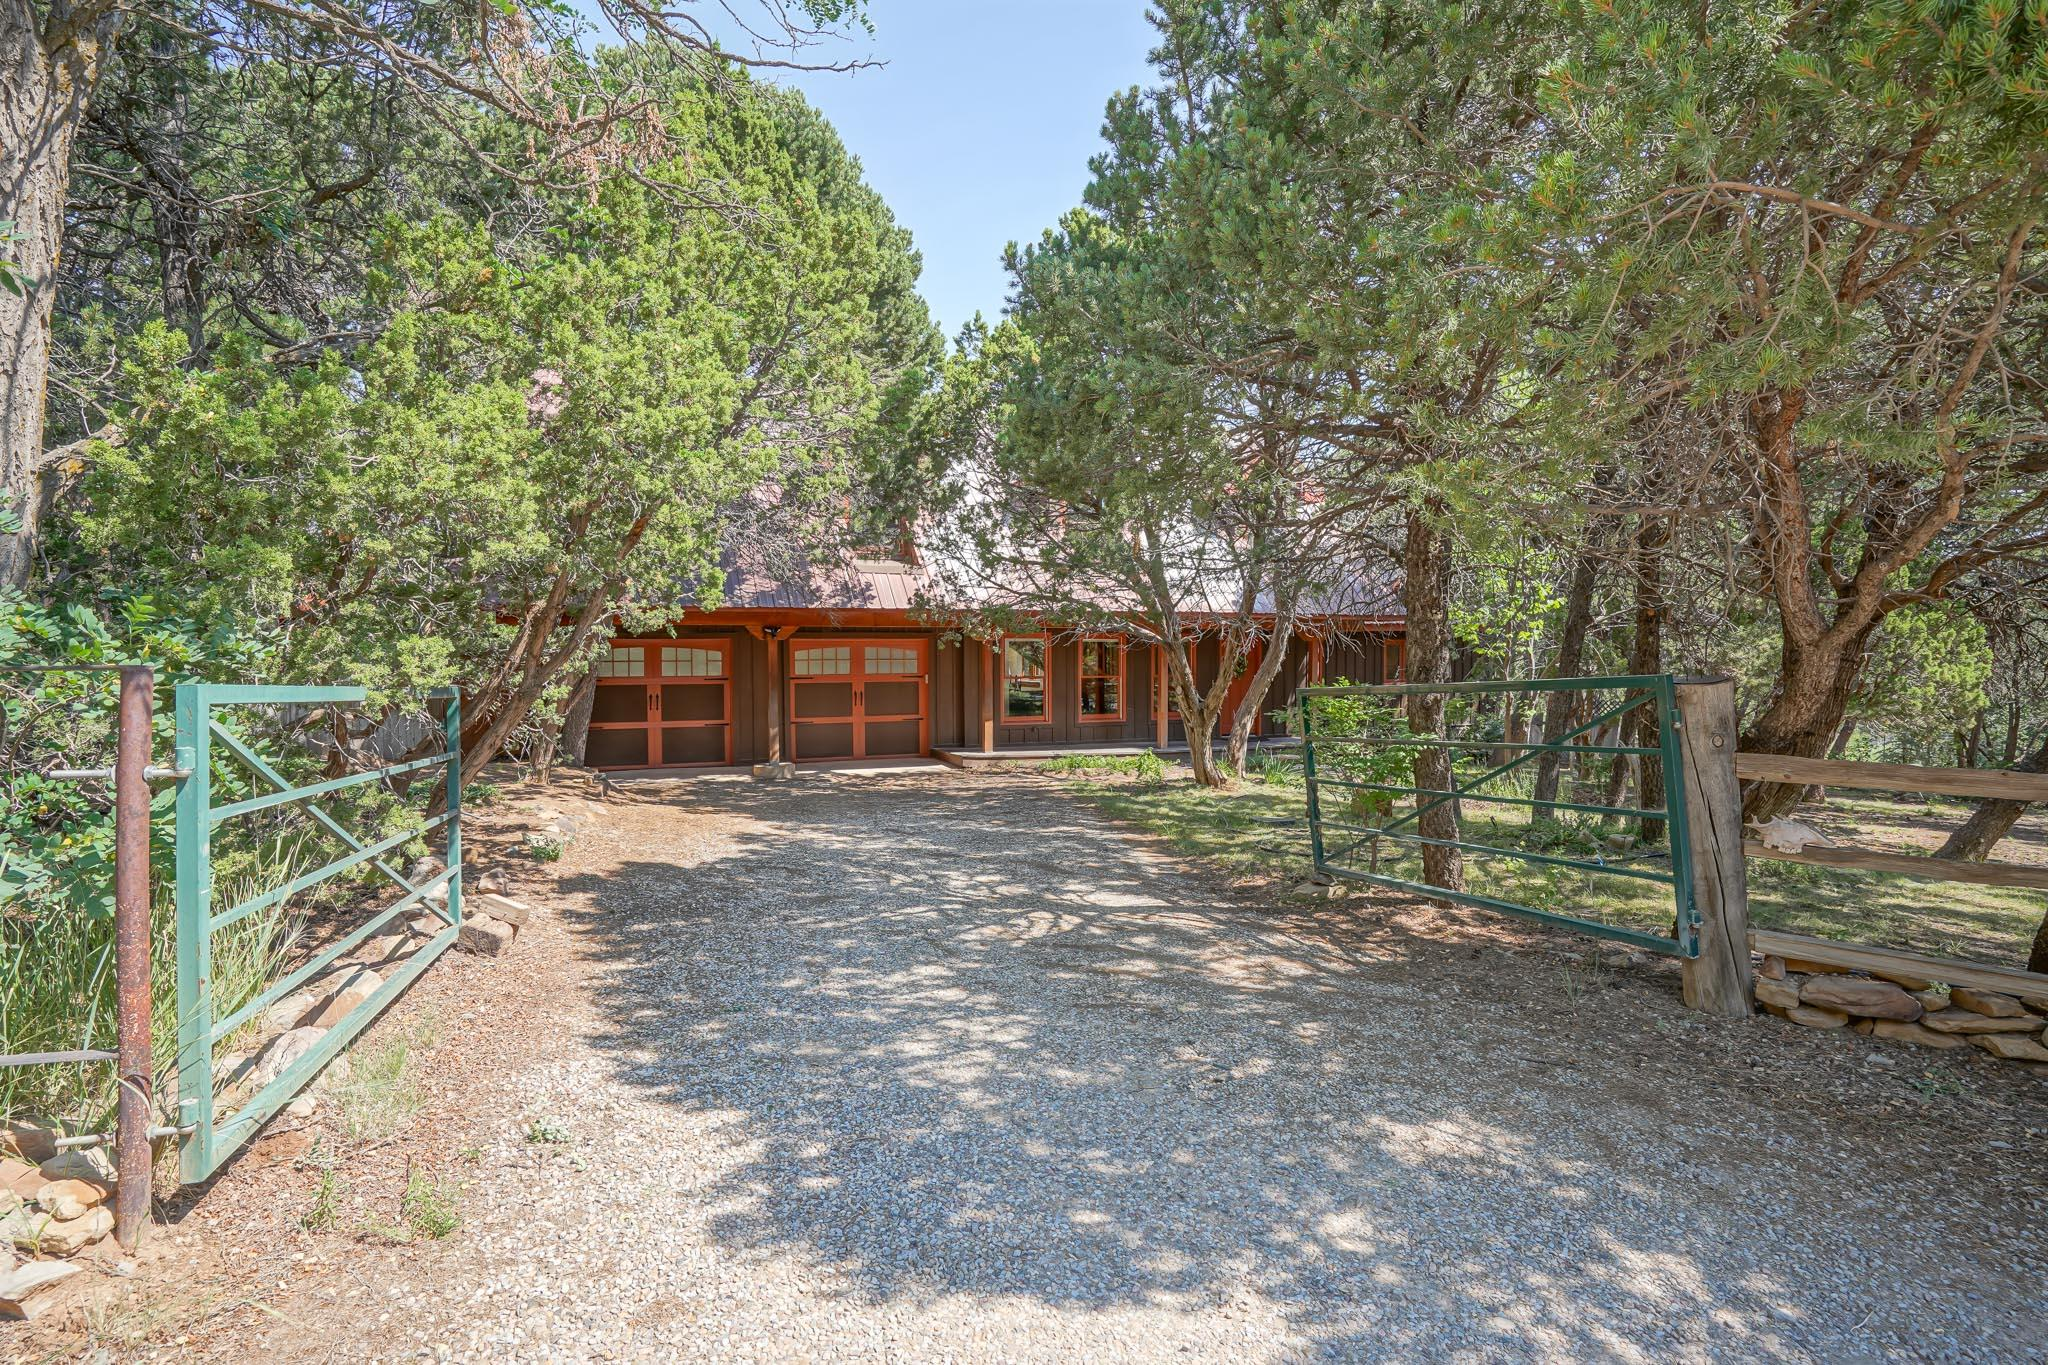 One of a kind Classic 1-1/2 Story Cape Cod on 1.63 acres of wooded privacy, 3 beds, 3 bath. Rustic 2 story 'bunk guest house' w/ kitchen, 3/4 bath, bedroom, gathering room w/ wood stove. 3 stall Vintage Style Barn, hay loft, tack area, drive thru rolling barn, paddock and 1/2 acre rec grazing area. Old fashioned Garden Shed on stone foundation. Main home features heating Soapstone and Vermont Castings wood stoves, wood beams, wood windows, bright open kitchen, pine 6 paneled doors, built in book cases, tall wood mop boards, wood coving, wood ceilings,wainscoting,  red oak wide plank floors, expansive decks and master balcony. Perfect multi-generation house and property. Sierra Vista Estates Community Water, Close to local shops and services plus quick access to I-40, ABQ, AF base, APO